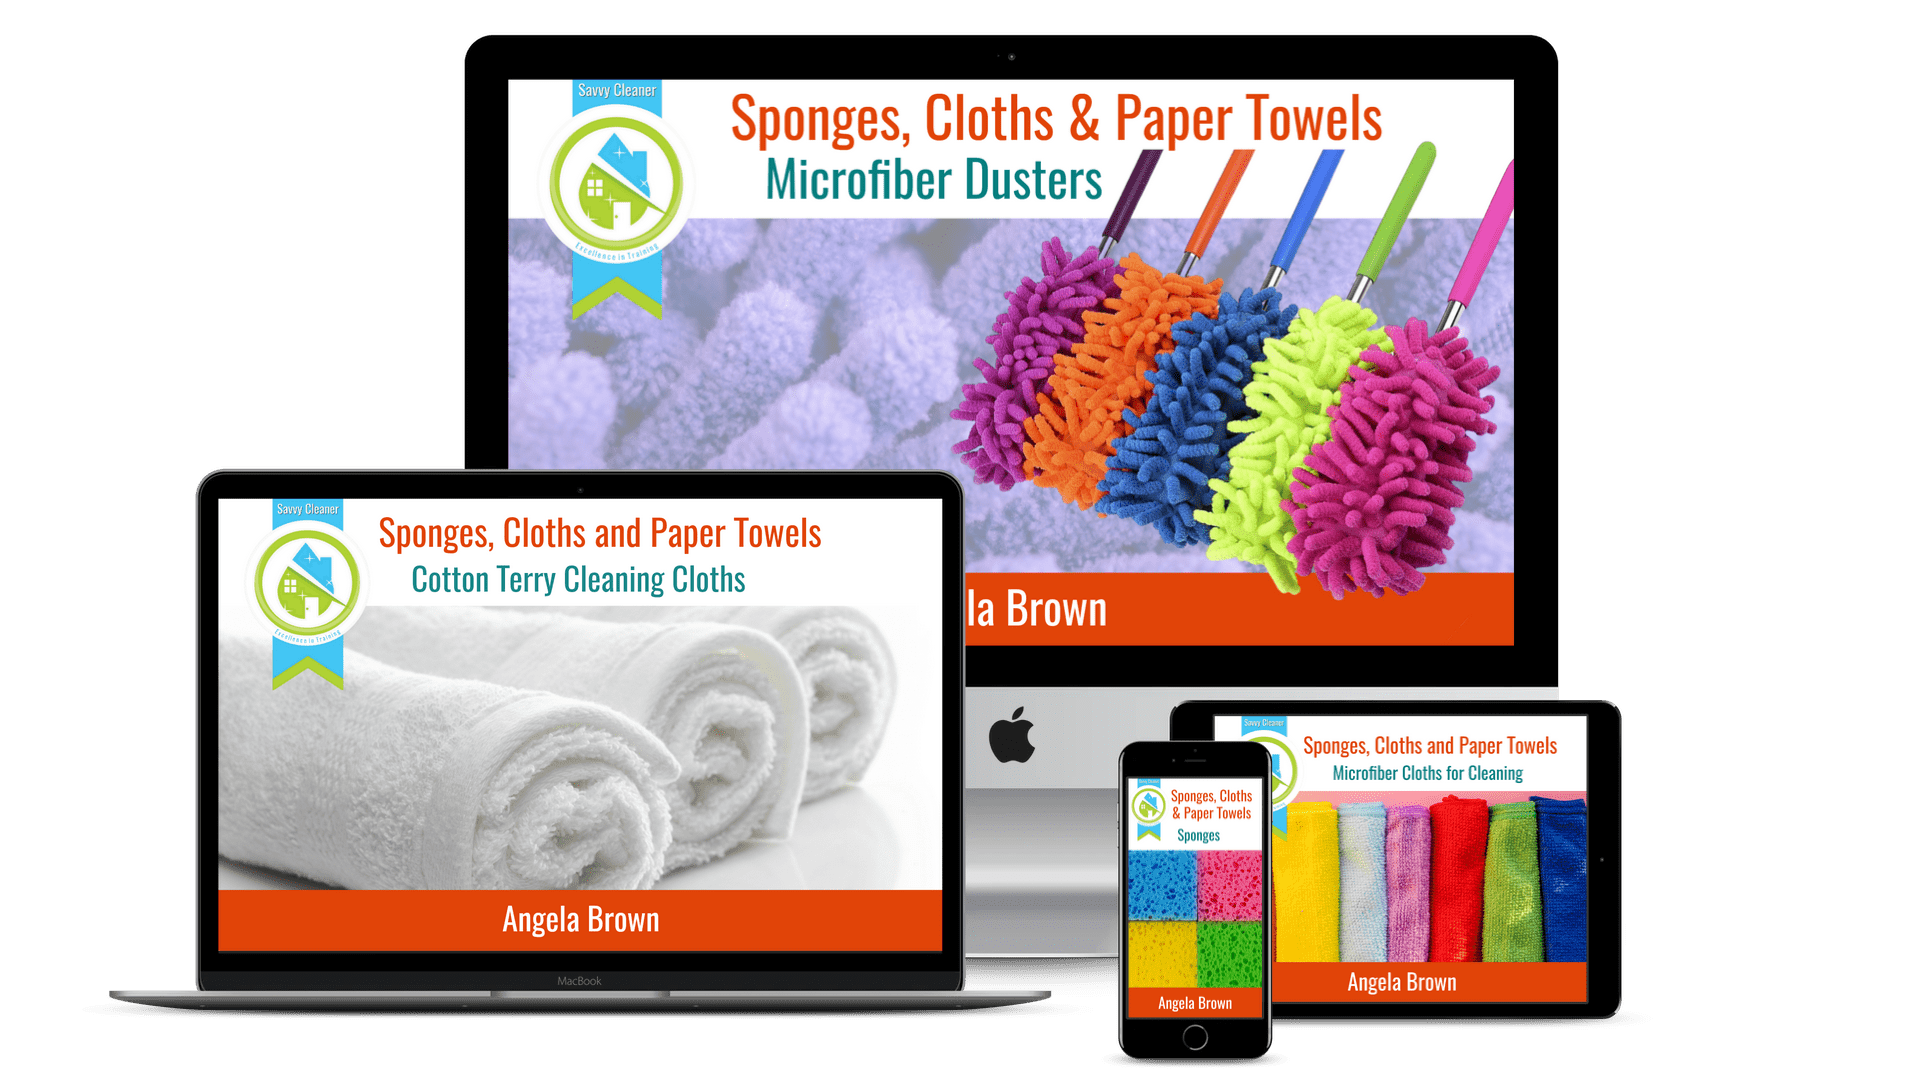 Sponges, Cloths, and Paper Towels Multiple Devices 1920 x 1080